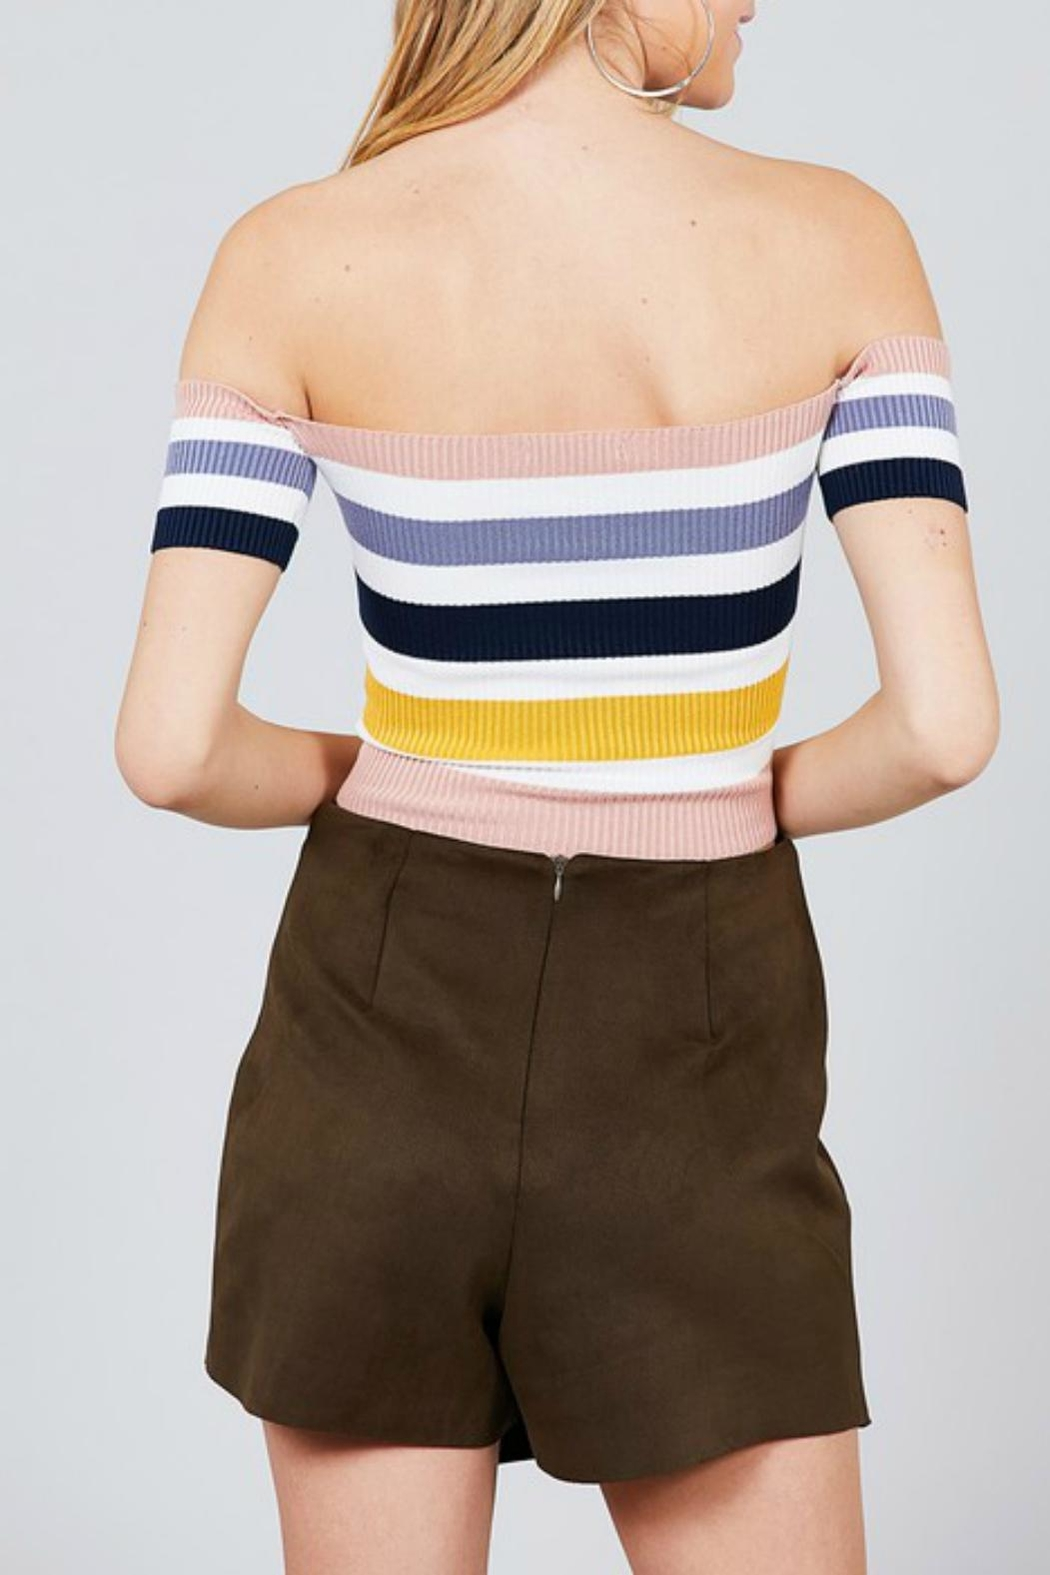 Pretty Little Things Colorblock Crop Top - Front Full Image